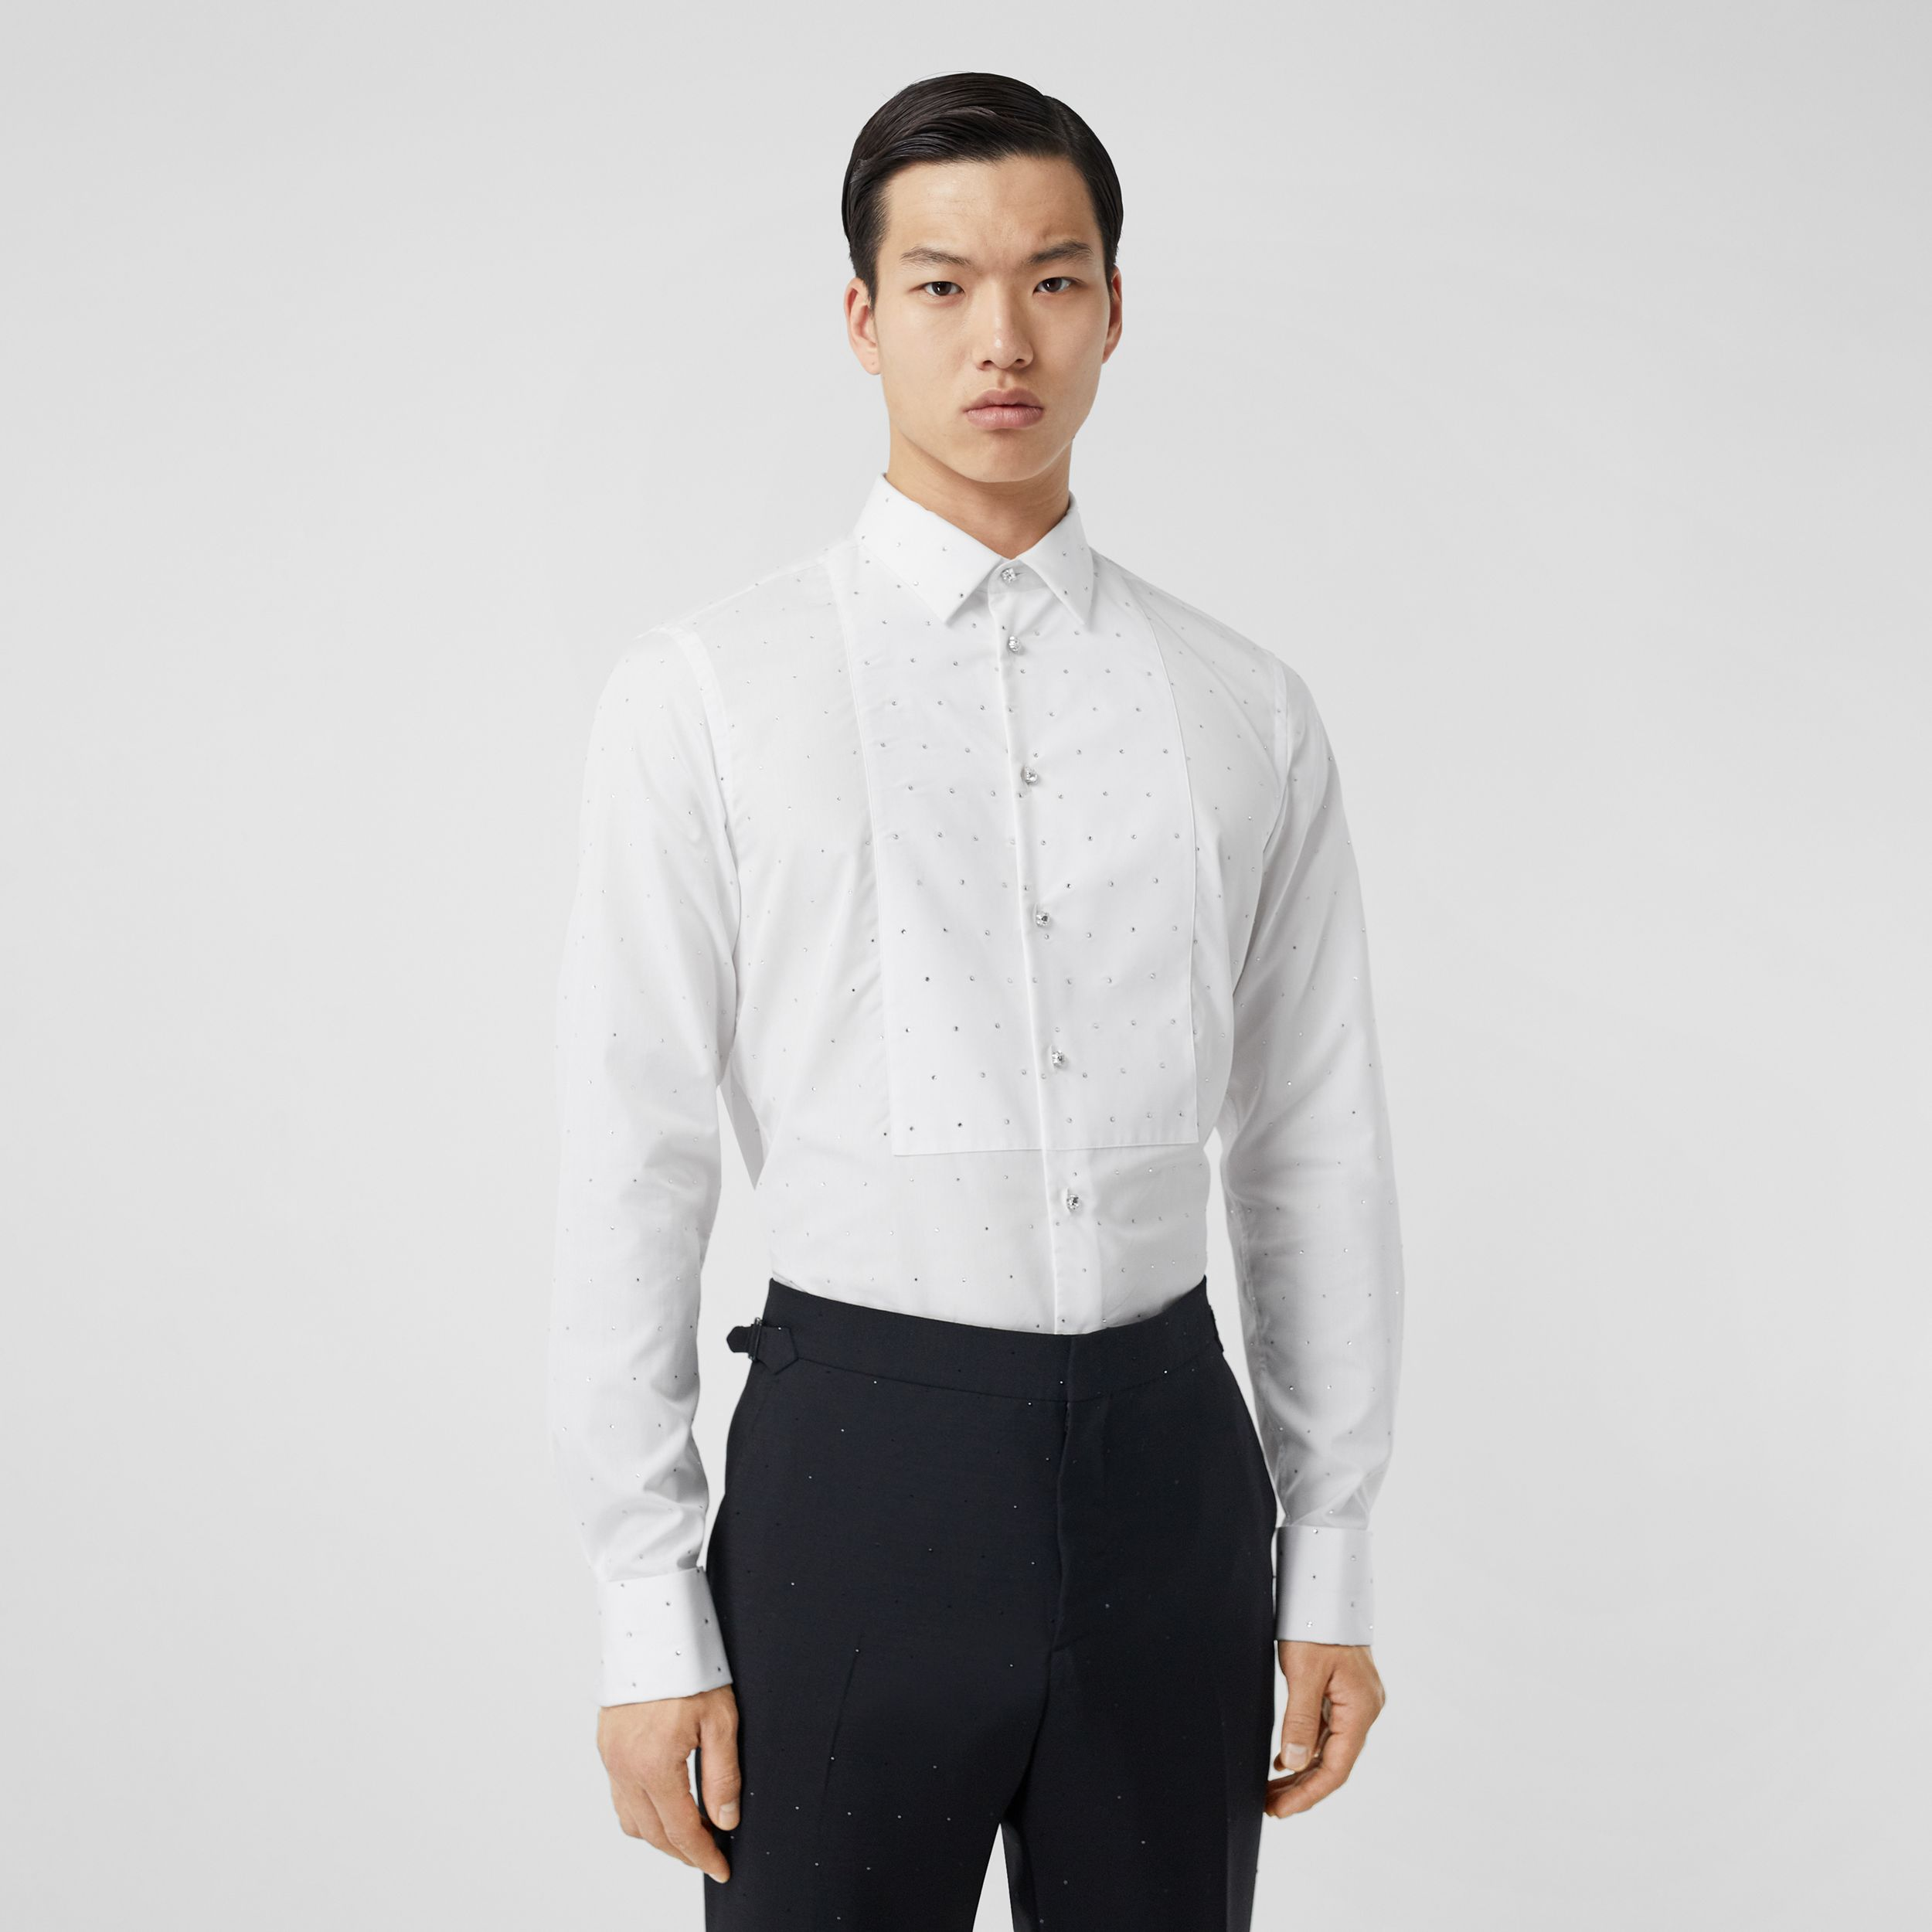 Embellished Cotton Poplin Dress Shirt in Optic White - Men | Burberry - 1